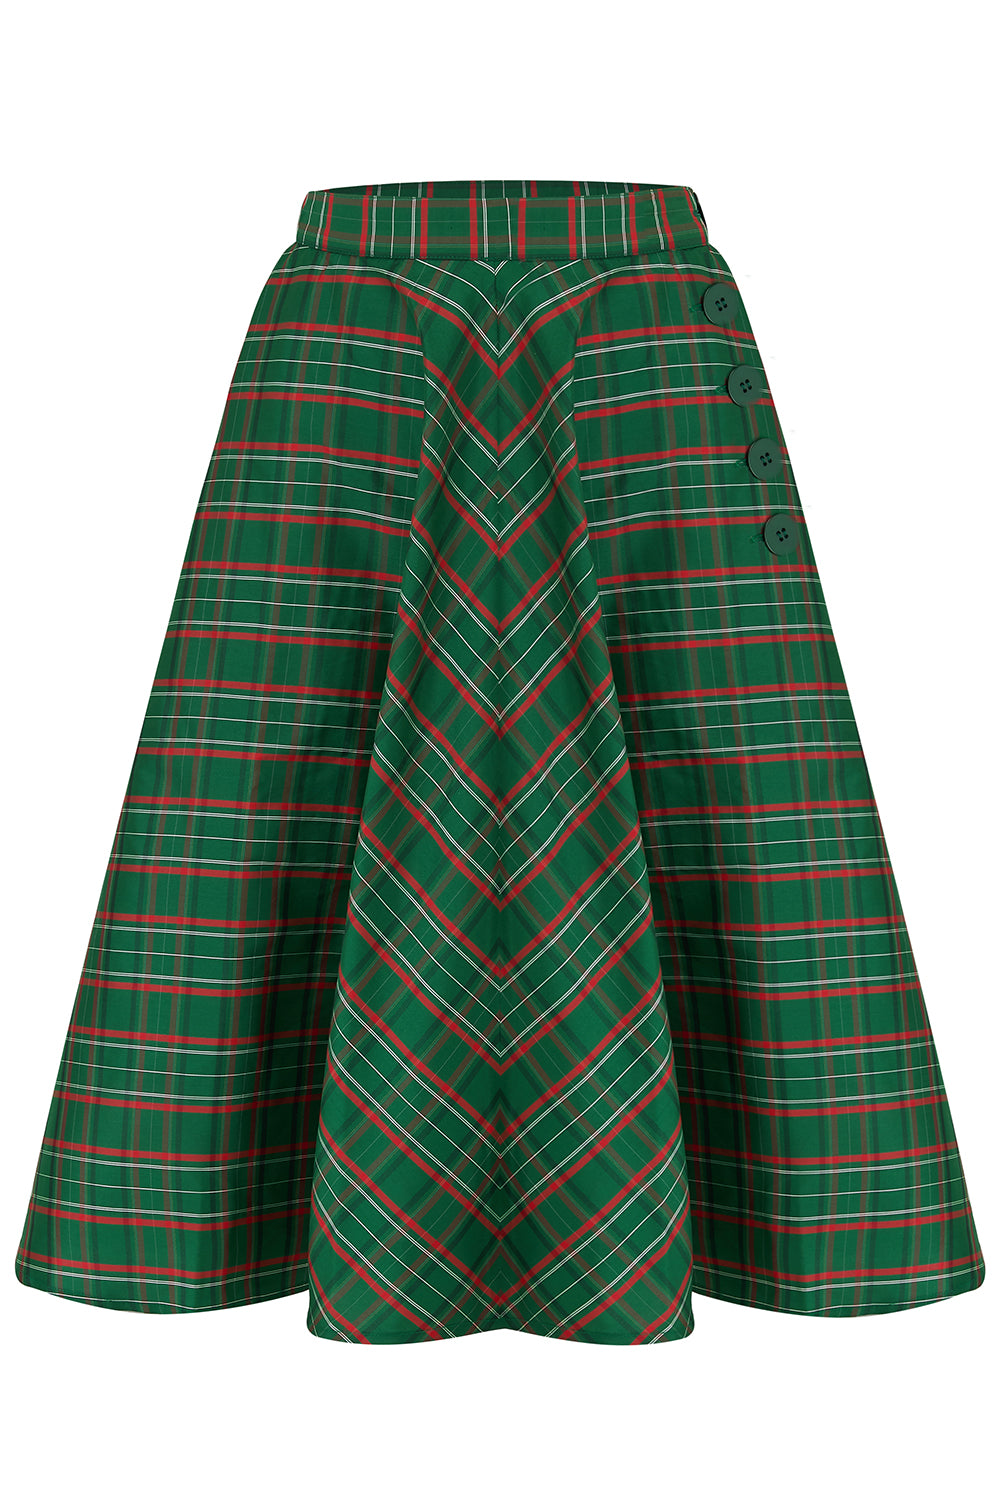 1940s Teenage Fashion: Girls Isabelle Skirt in Green Taffeta Tartan Classic  Authentic 1940s Vintage Inspired Style £49.00 AT vintagedancer.com